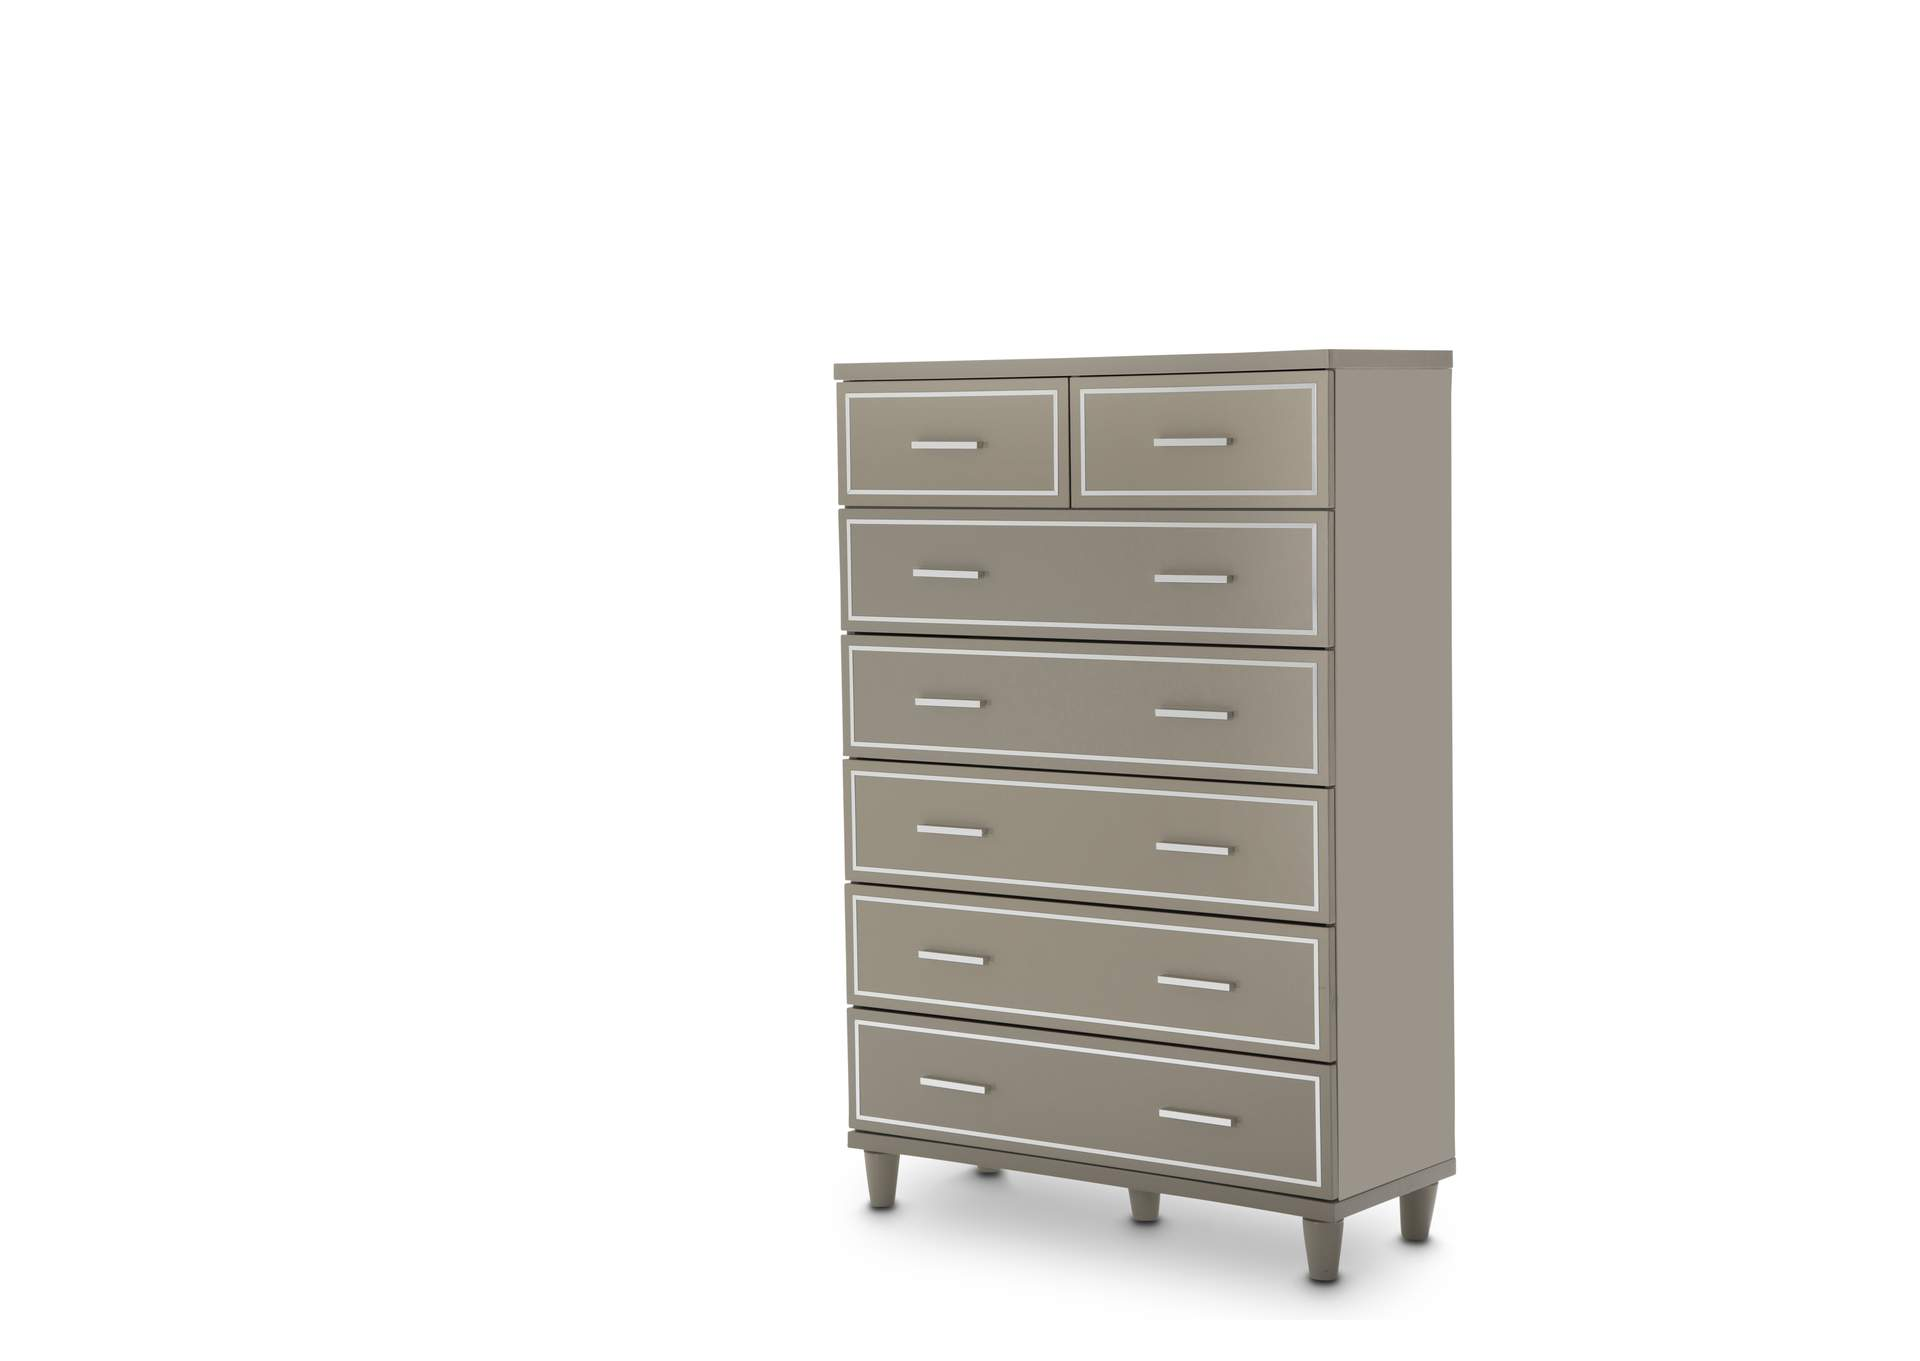 Urban Place Dove Grey Urban Place 7 Drawer Chest Dove Gray,AICO